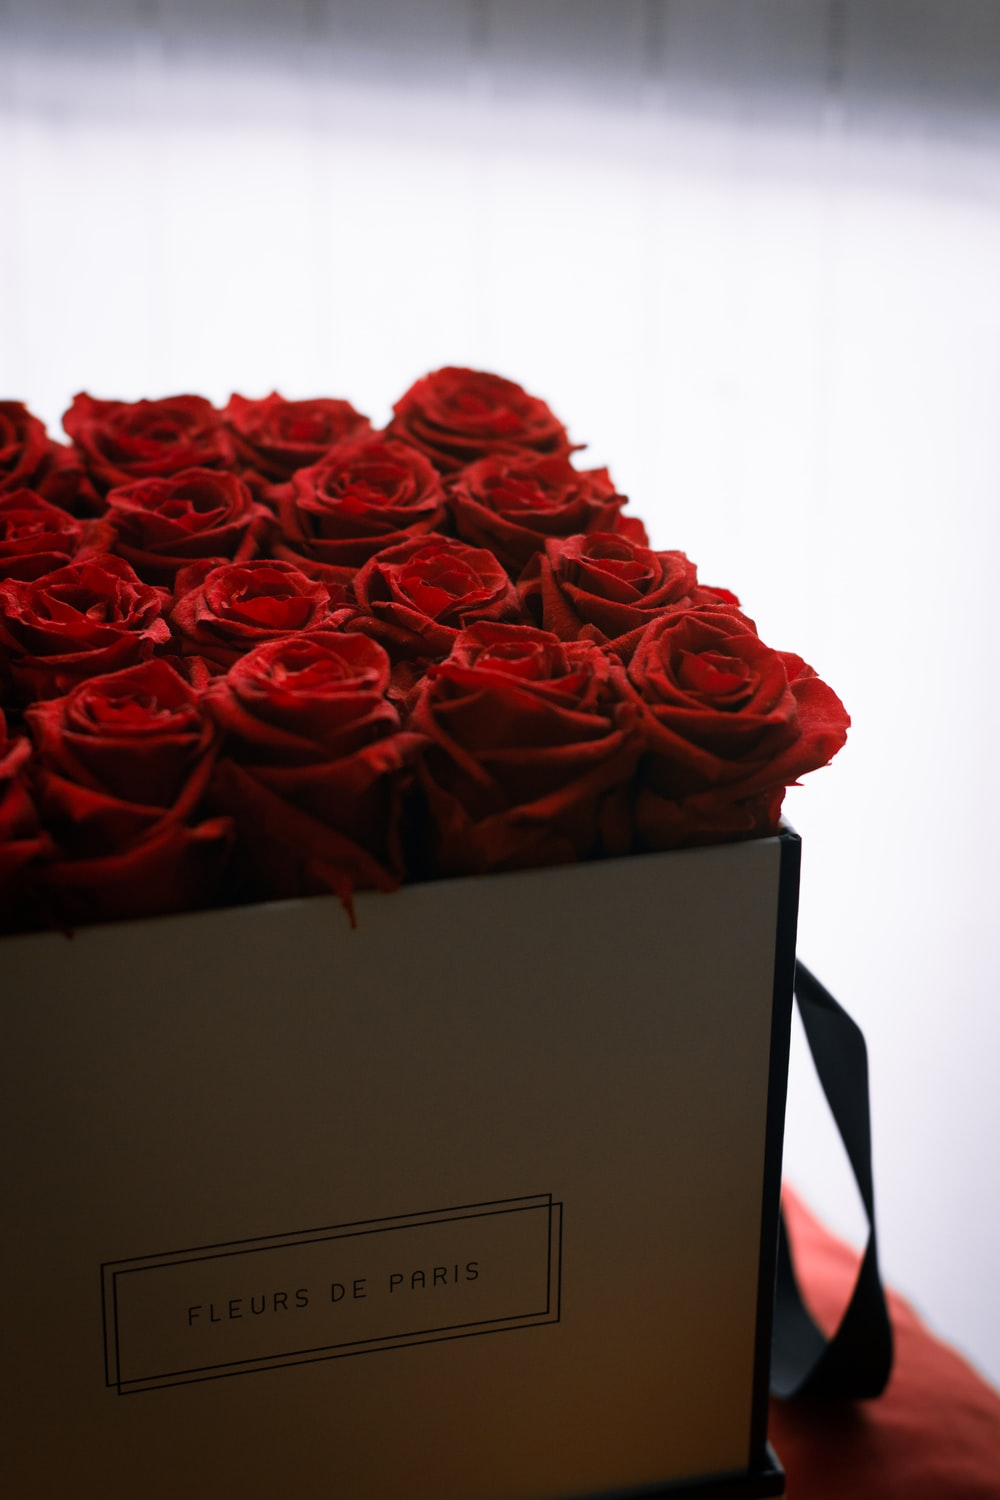 red rose bouquet on brown cardboard box